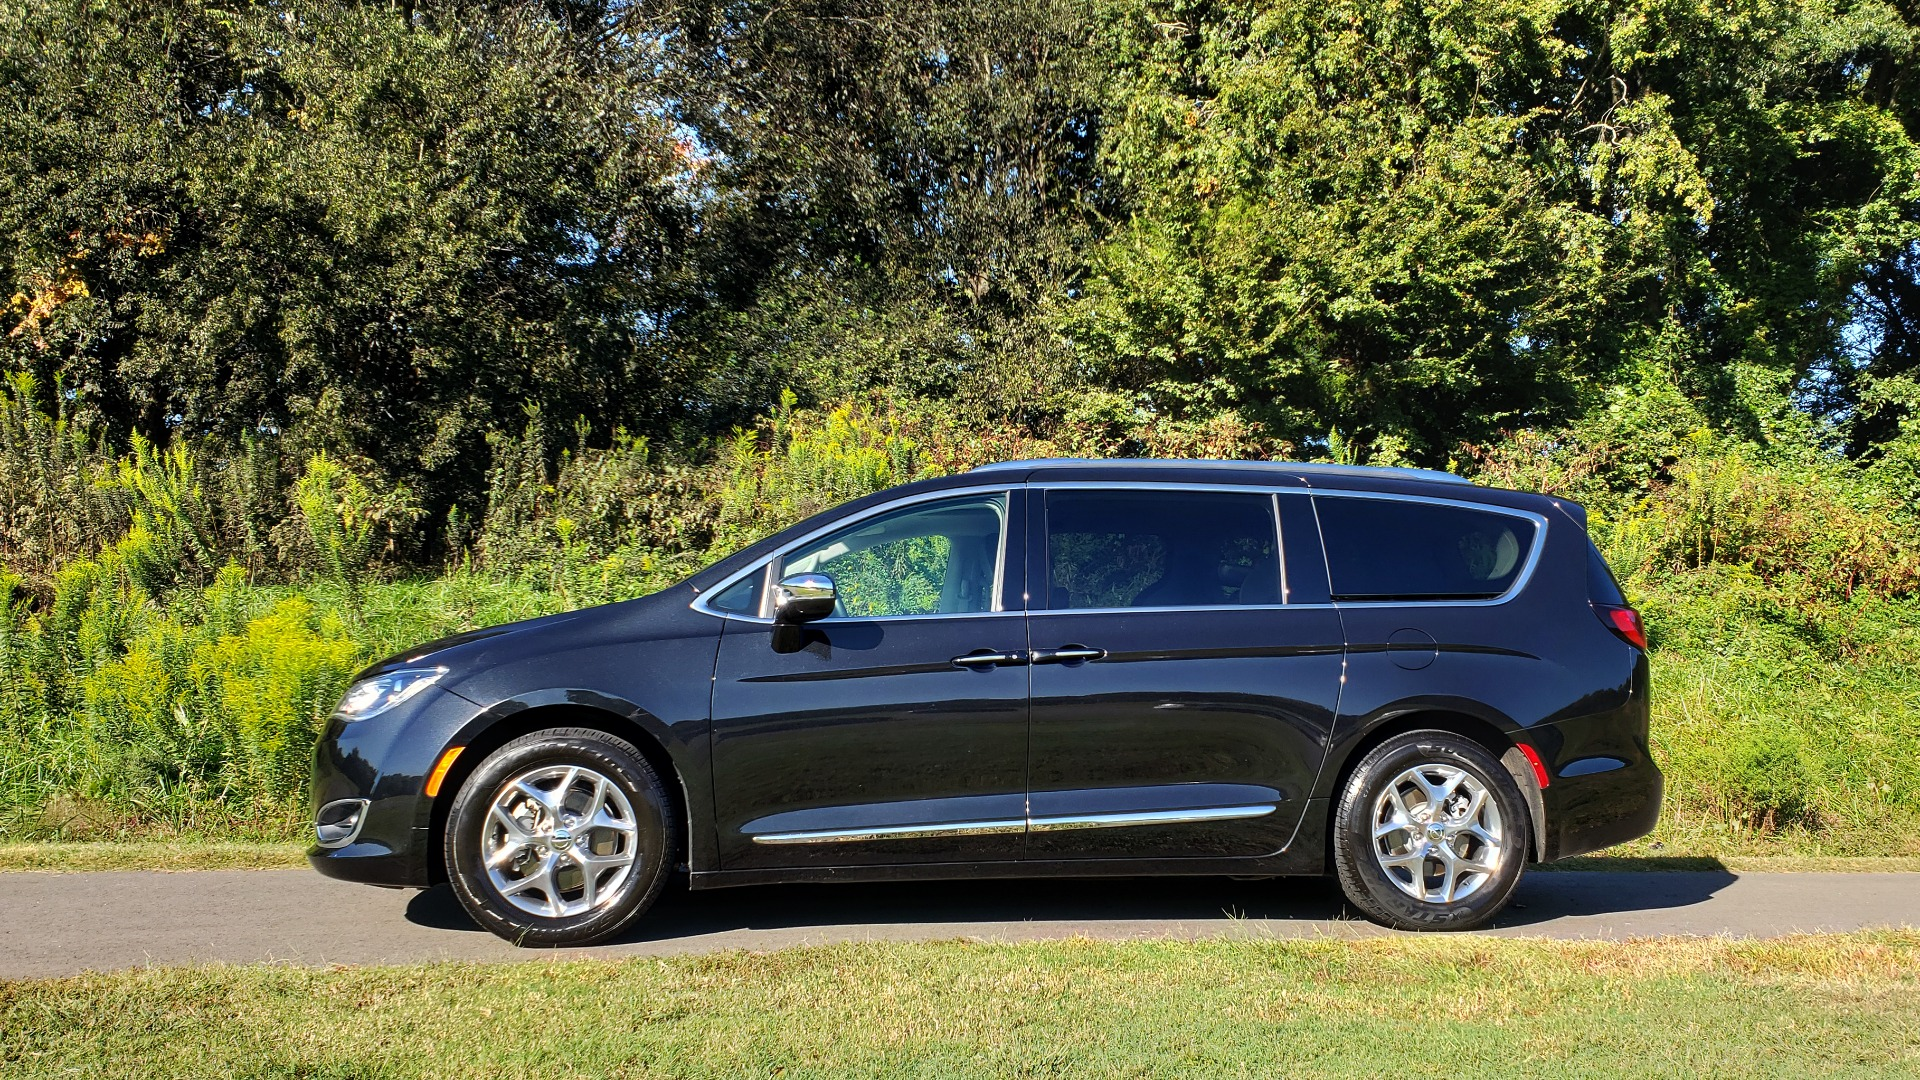 Used 2018 Chrysler PACIFICA LIMITED / 3.6L V6 / NAV / PANO-ROOF / 3-ROWS / REARVIEW for sale Sold at Formula Imports in Charlotte NC 28227 7